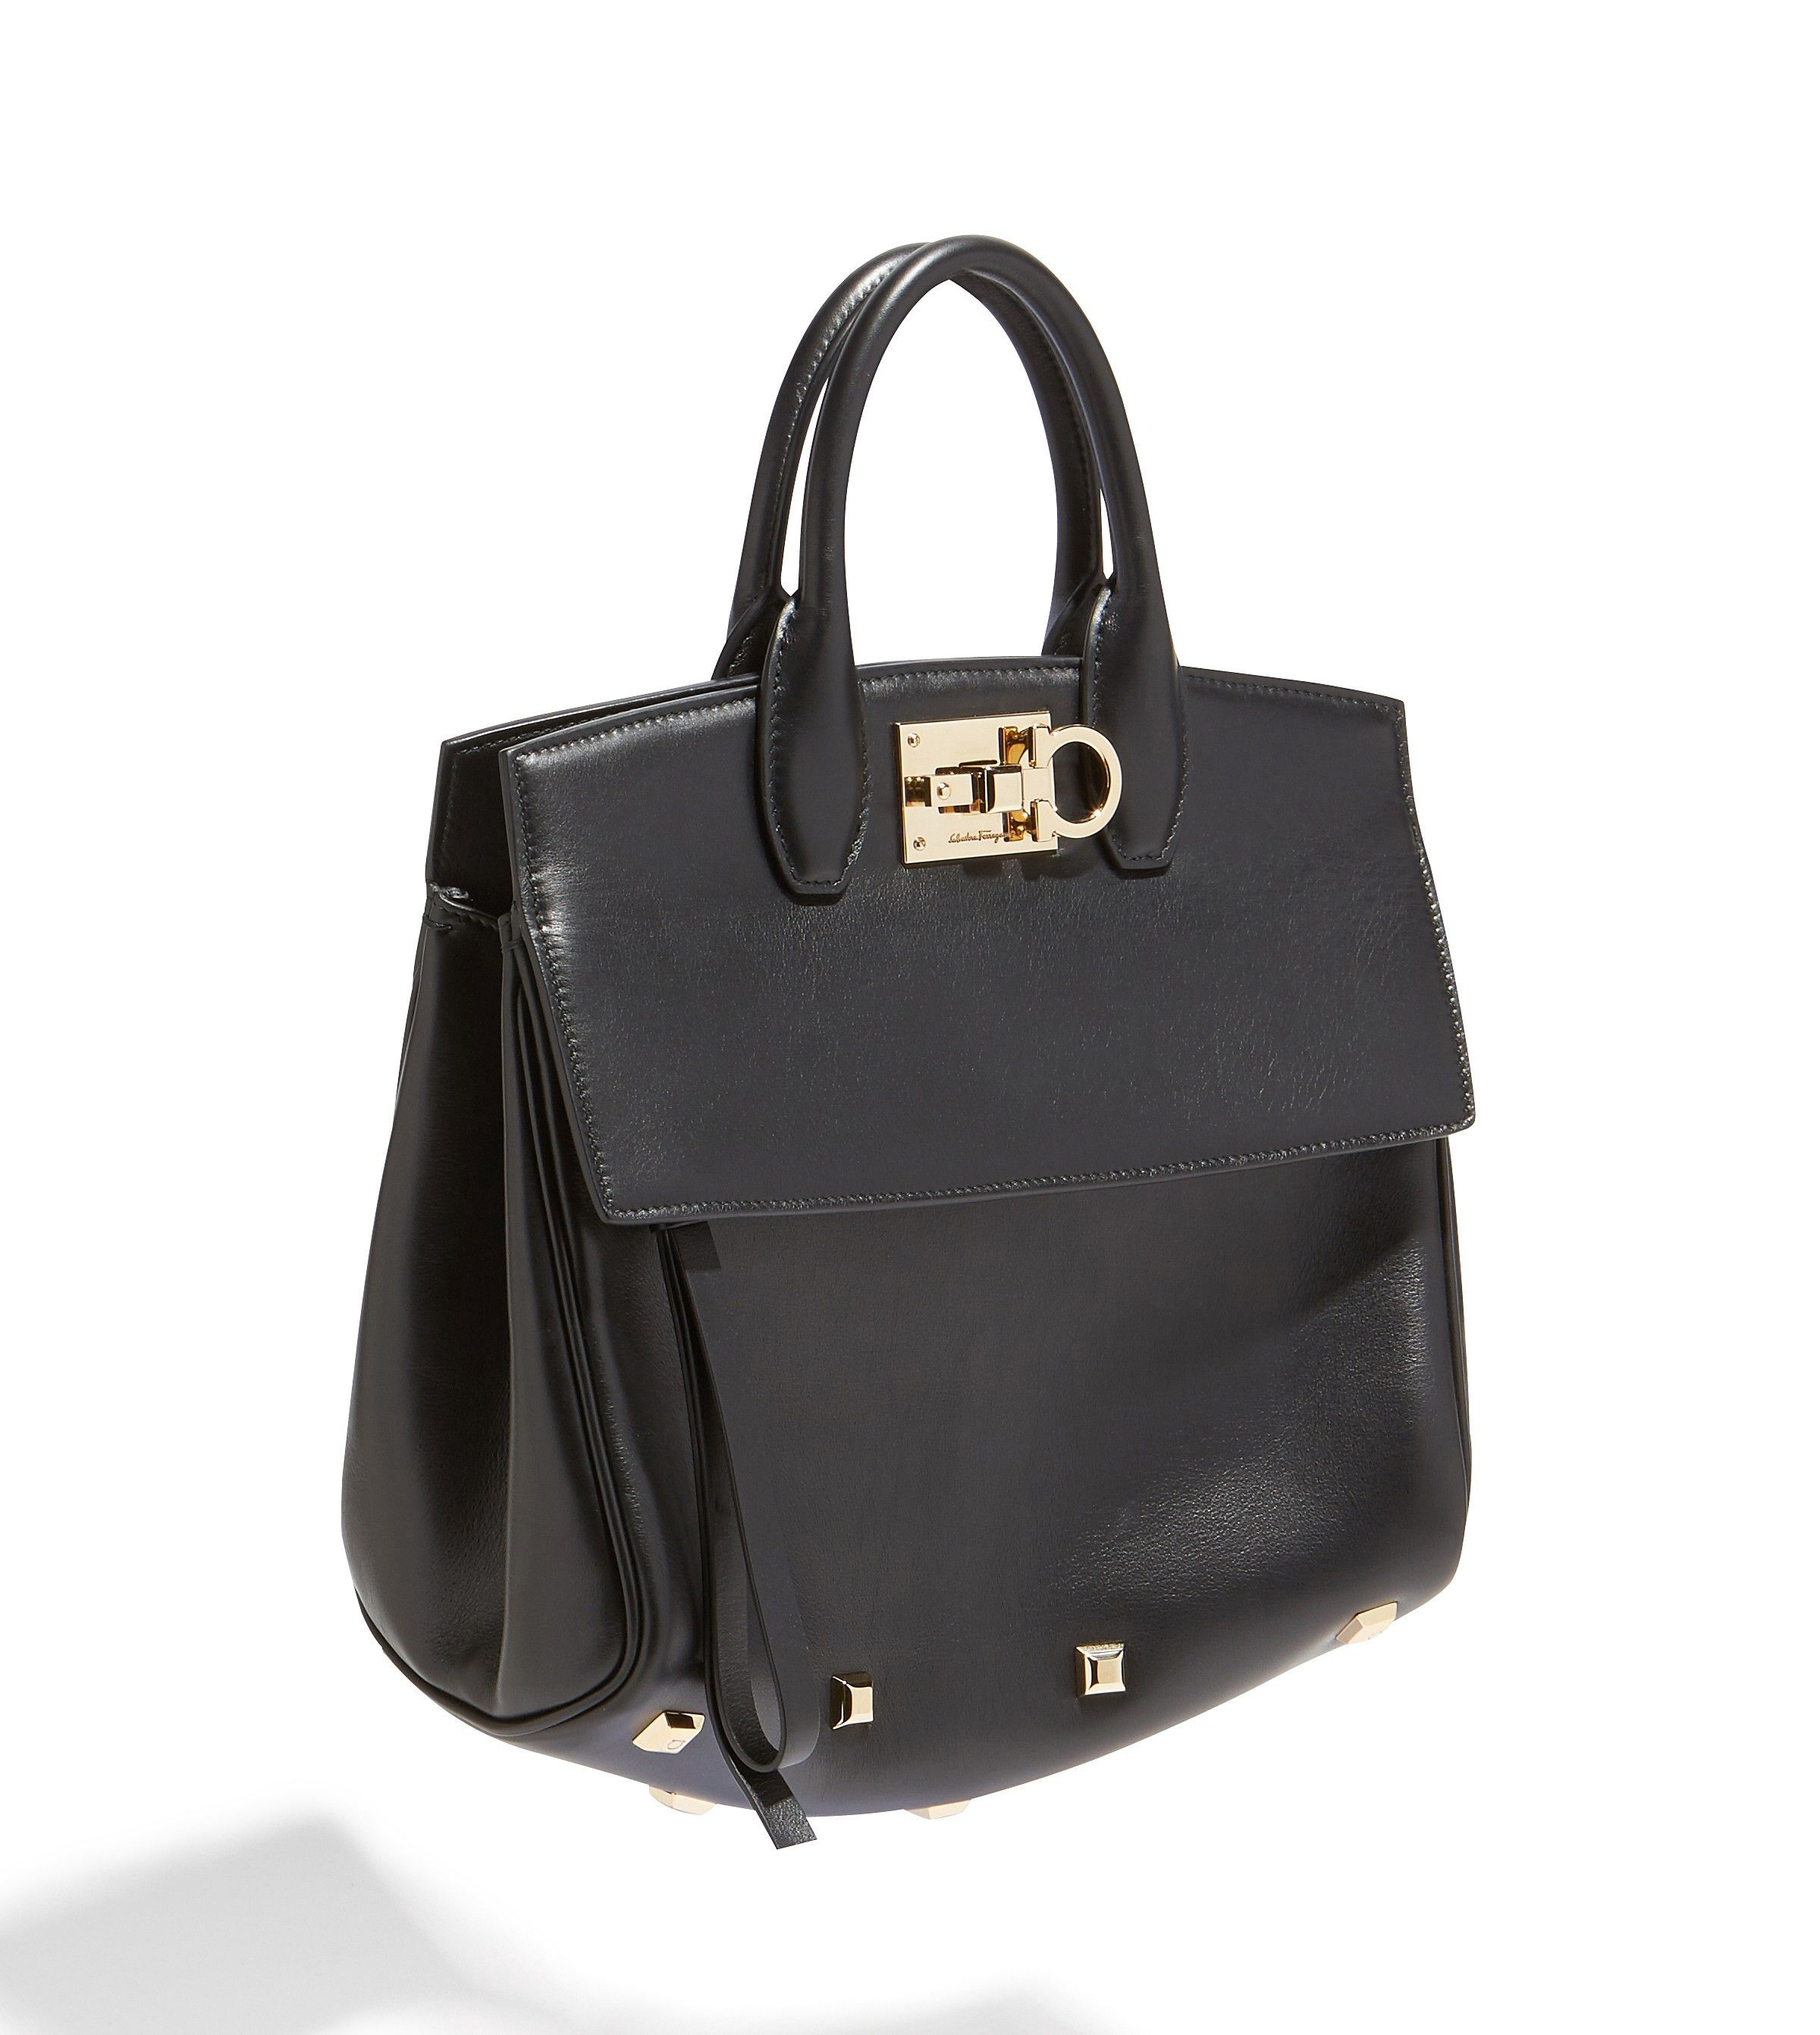 Salvatore Ferragamo Studio Bag Black | Bolsos